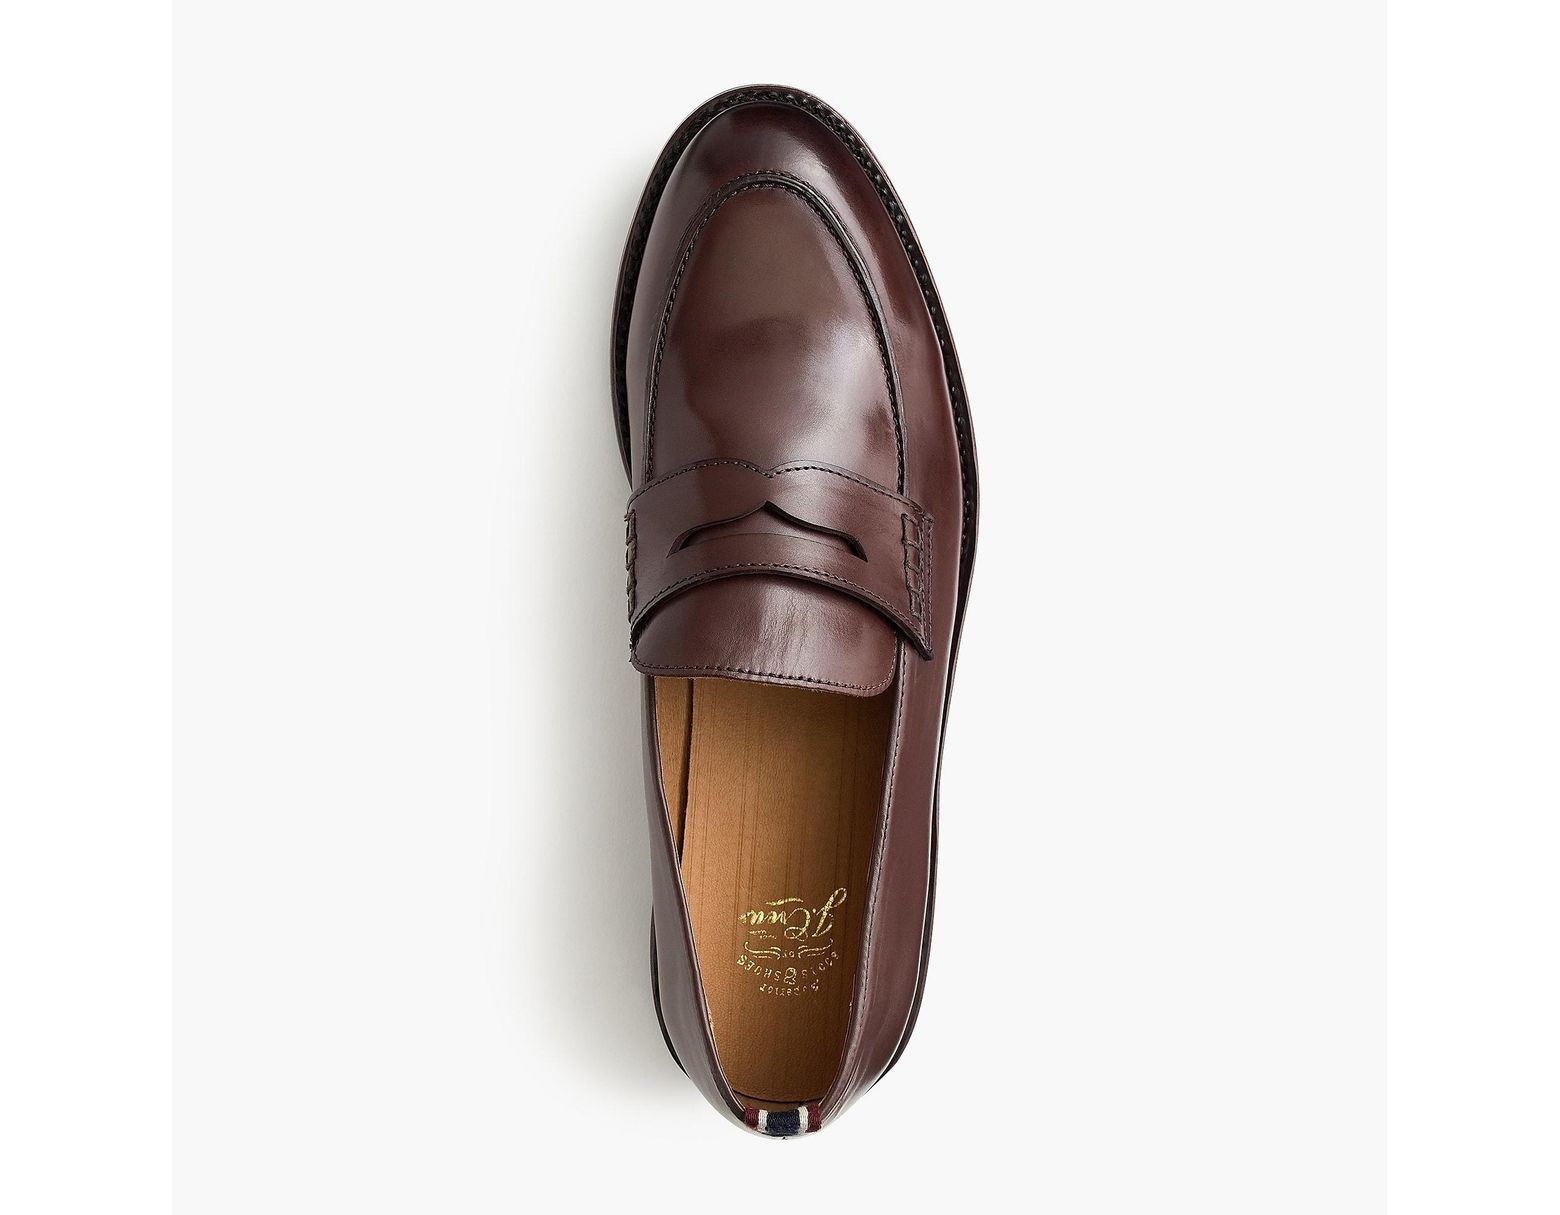 b2d4b8a9b3d44 J.Crew Oar Stripe Penny Loafers In Italian Leather in Brown for Men - Lyst